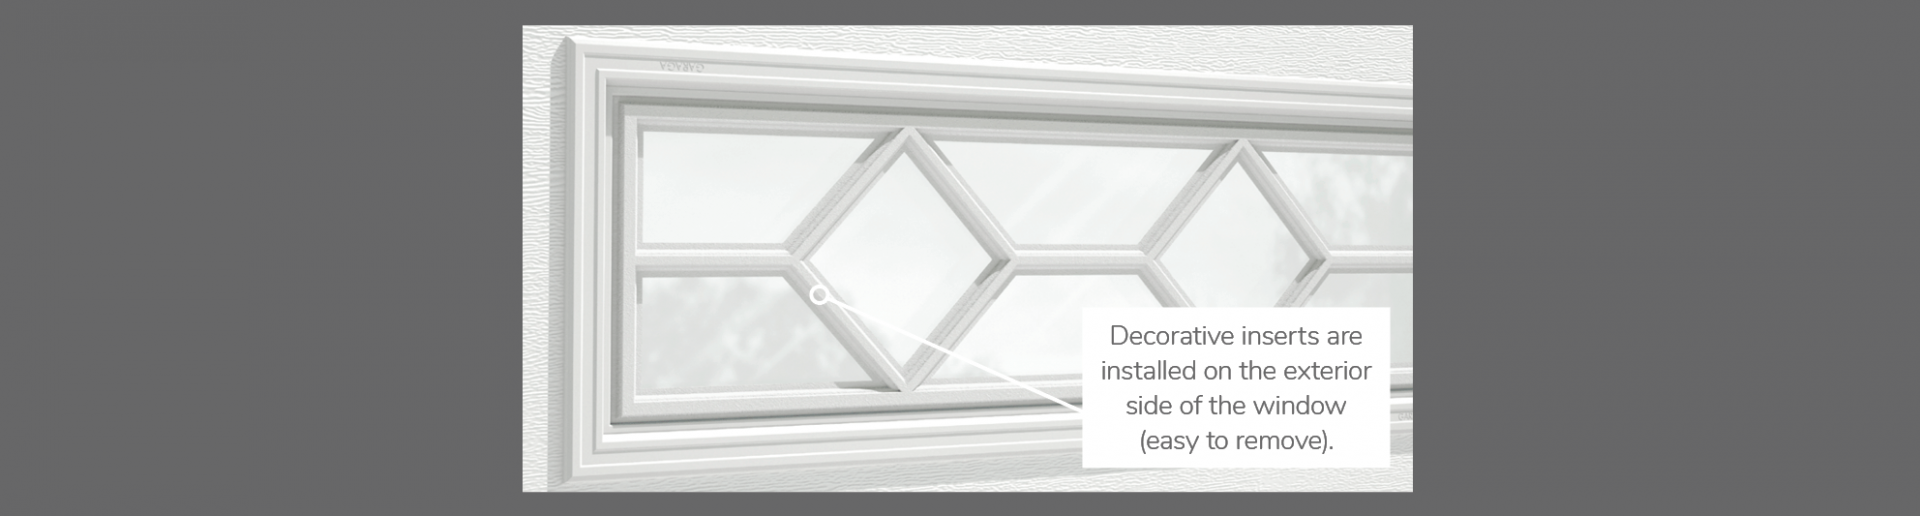 "Waterton Decorative Insert, 40"" x 13"" or 41"" x 16"", available for door R-16, 3 layers - Polystyrene,  2 layers - Polystyrene and Non-insulated"